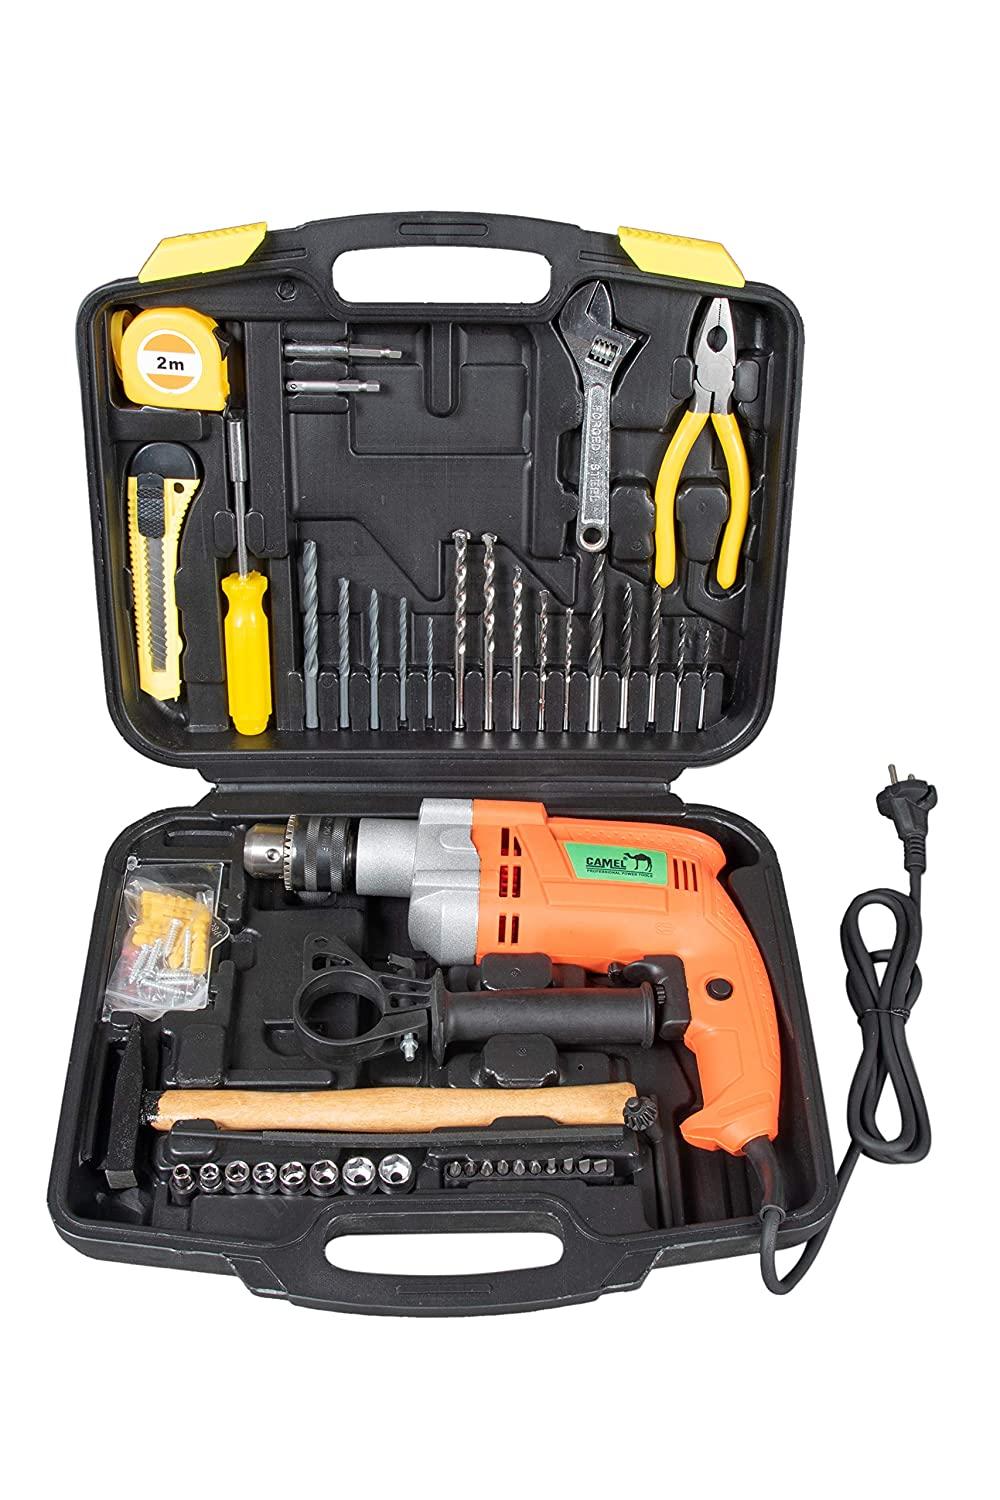 Top 3 Best Tool Kit For Home